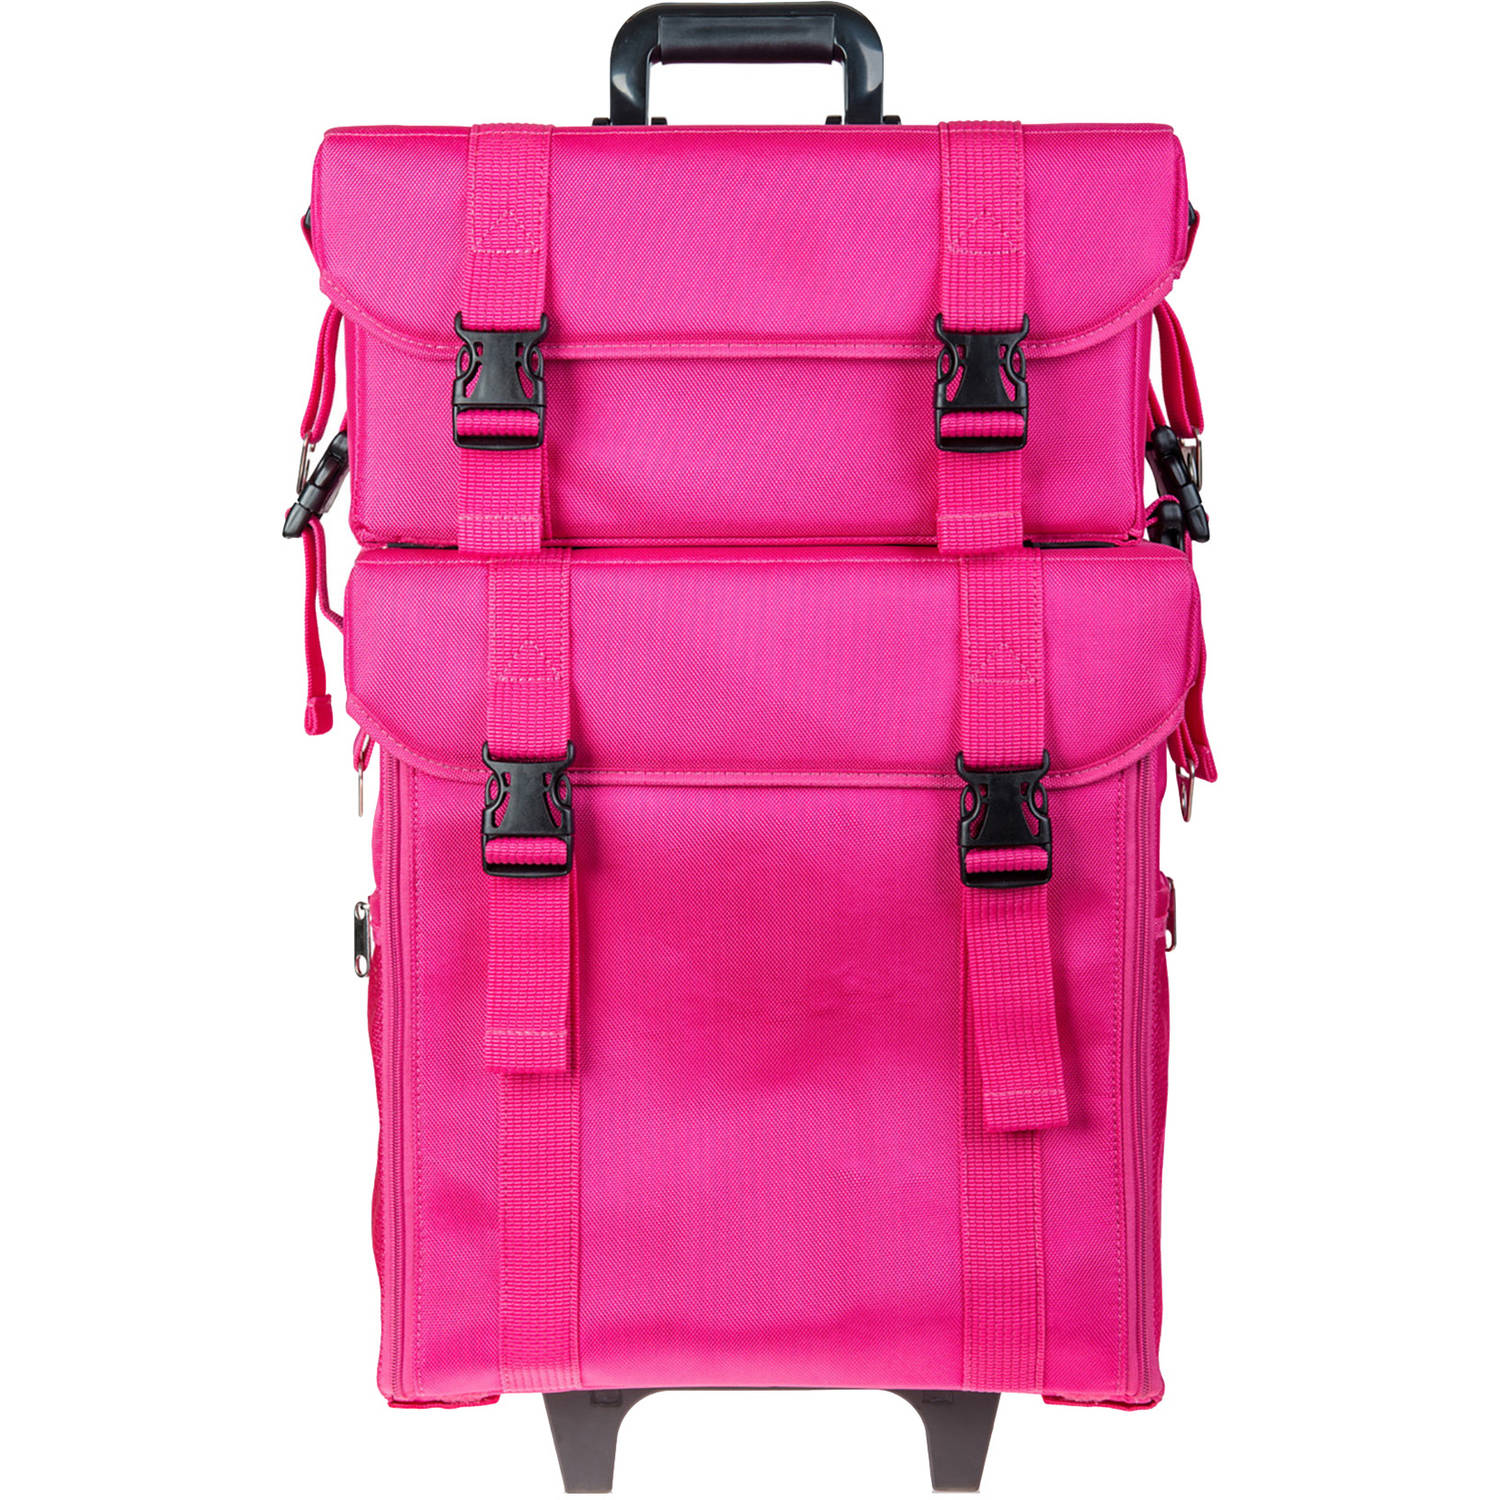 SHANY Soft Makeup Artist Rolling Trolley